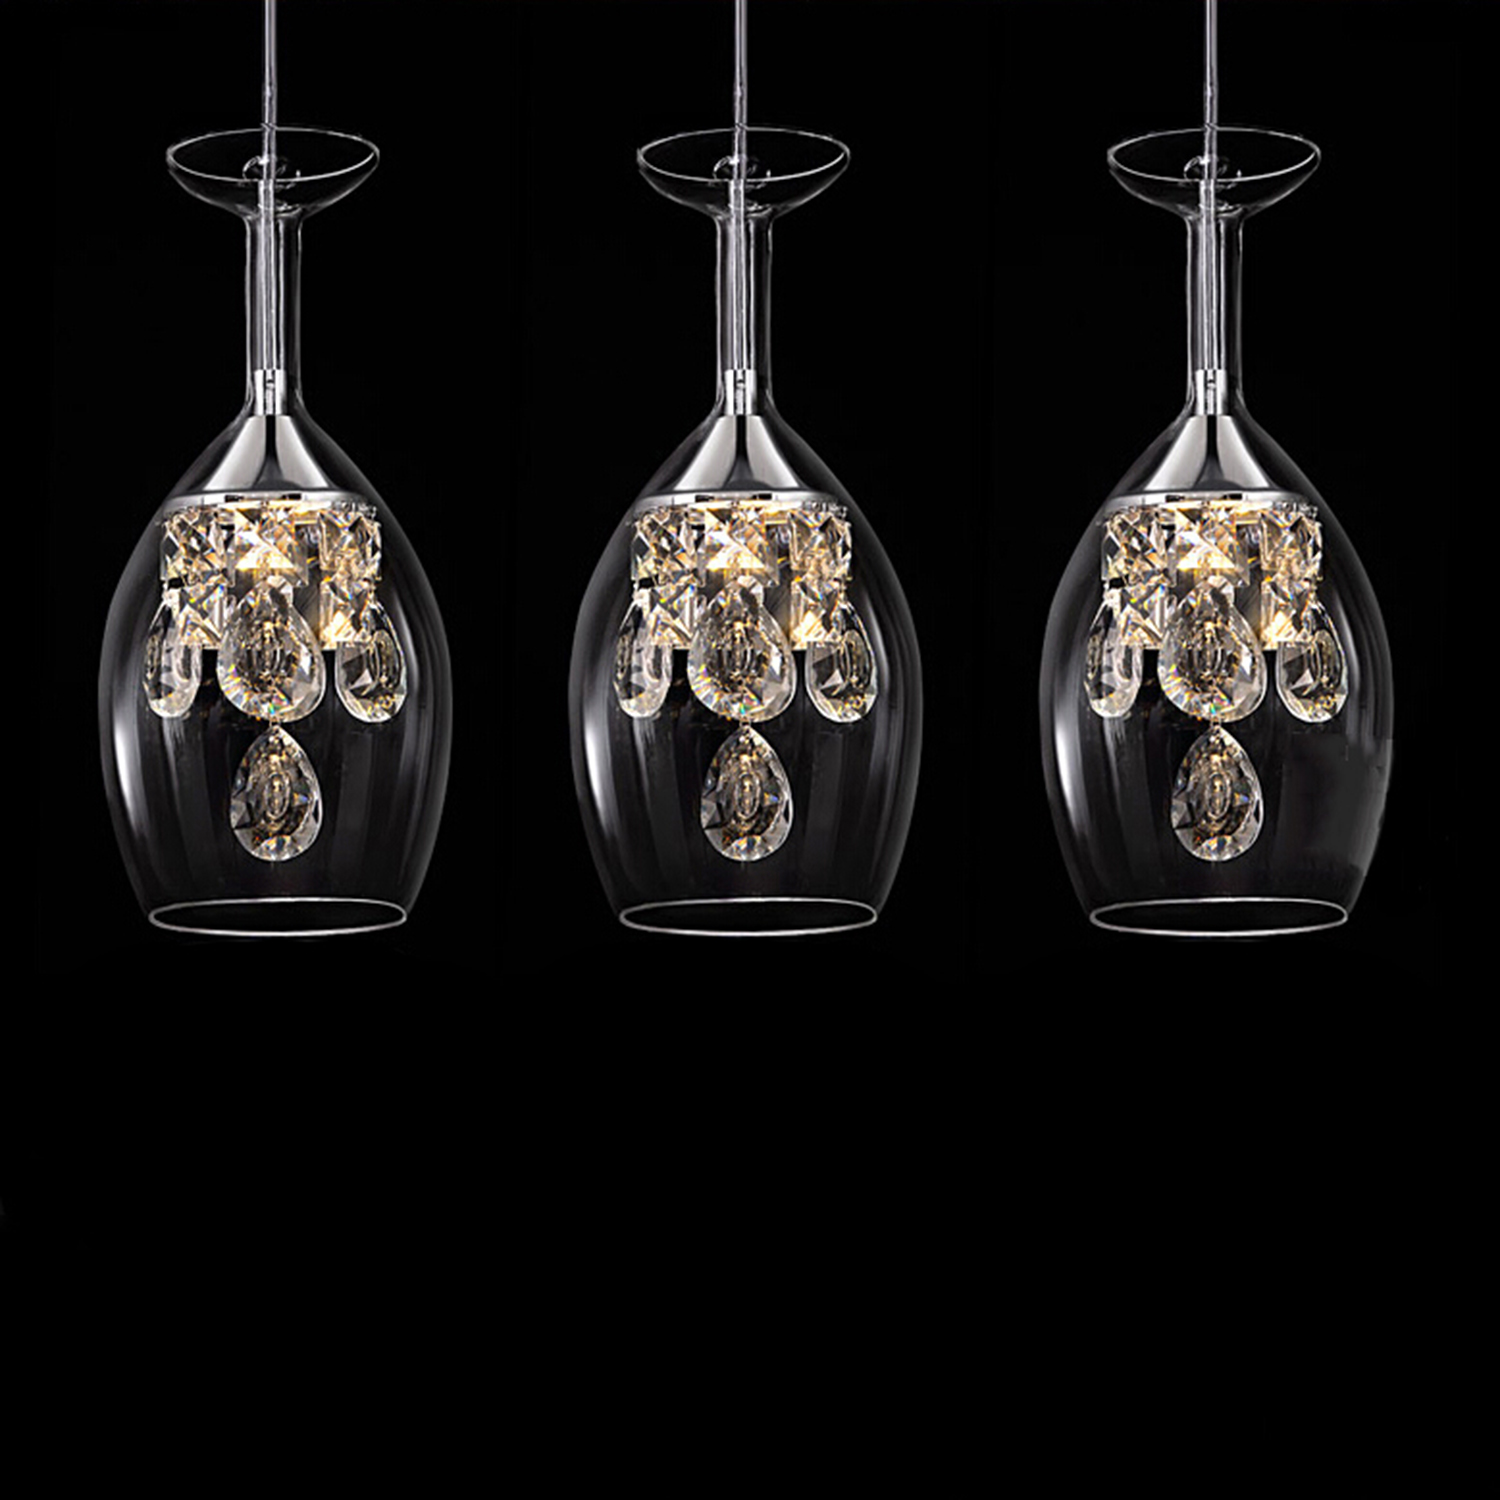 Island Modern Crystal LED Mini Pendant Three Light Ceiling